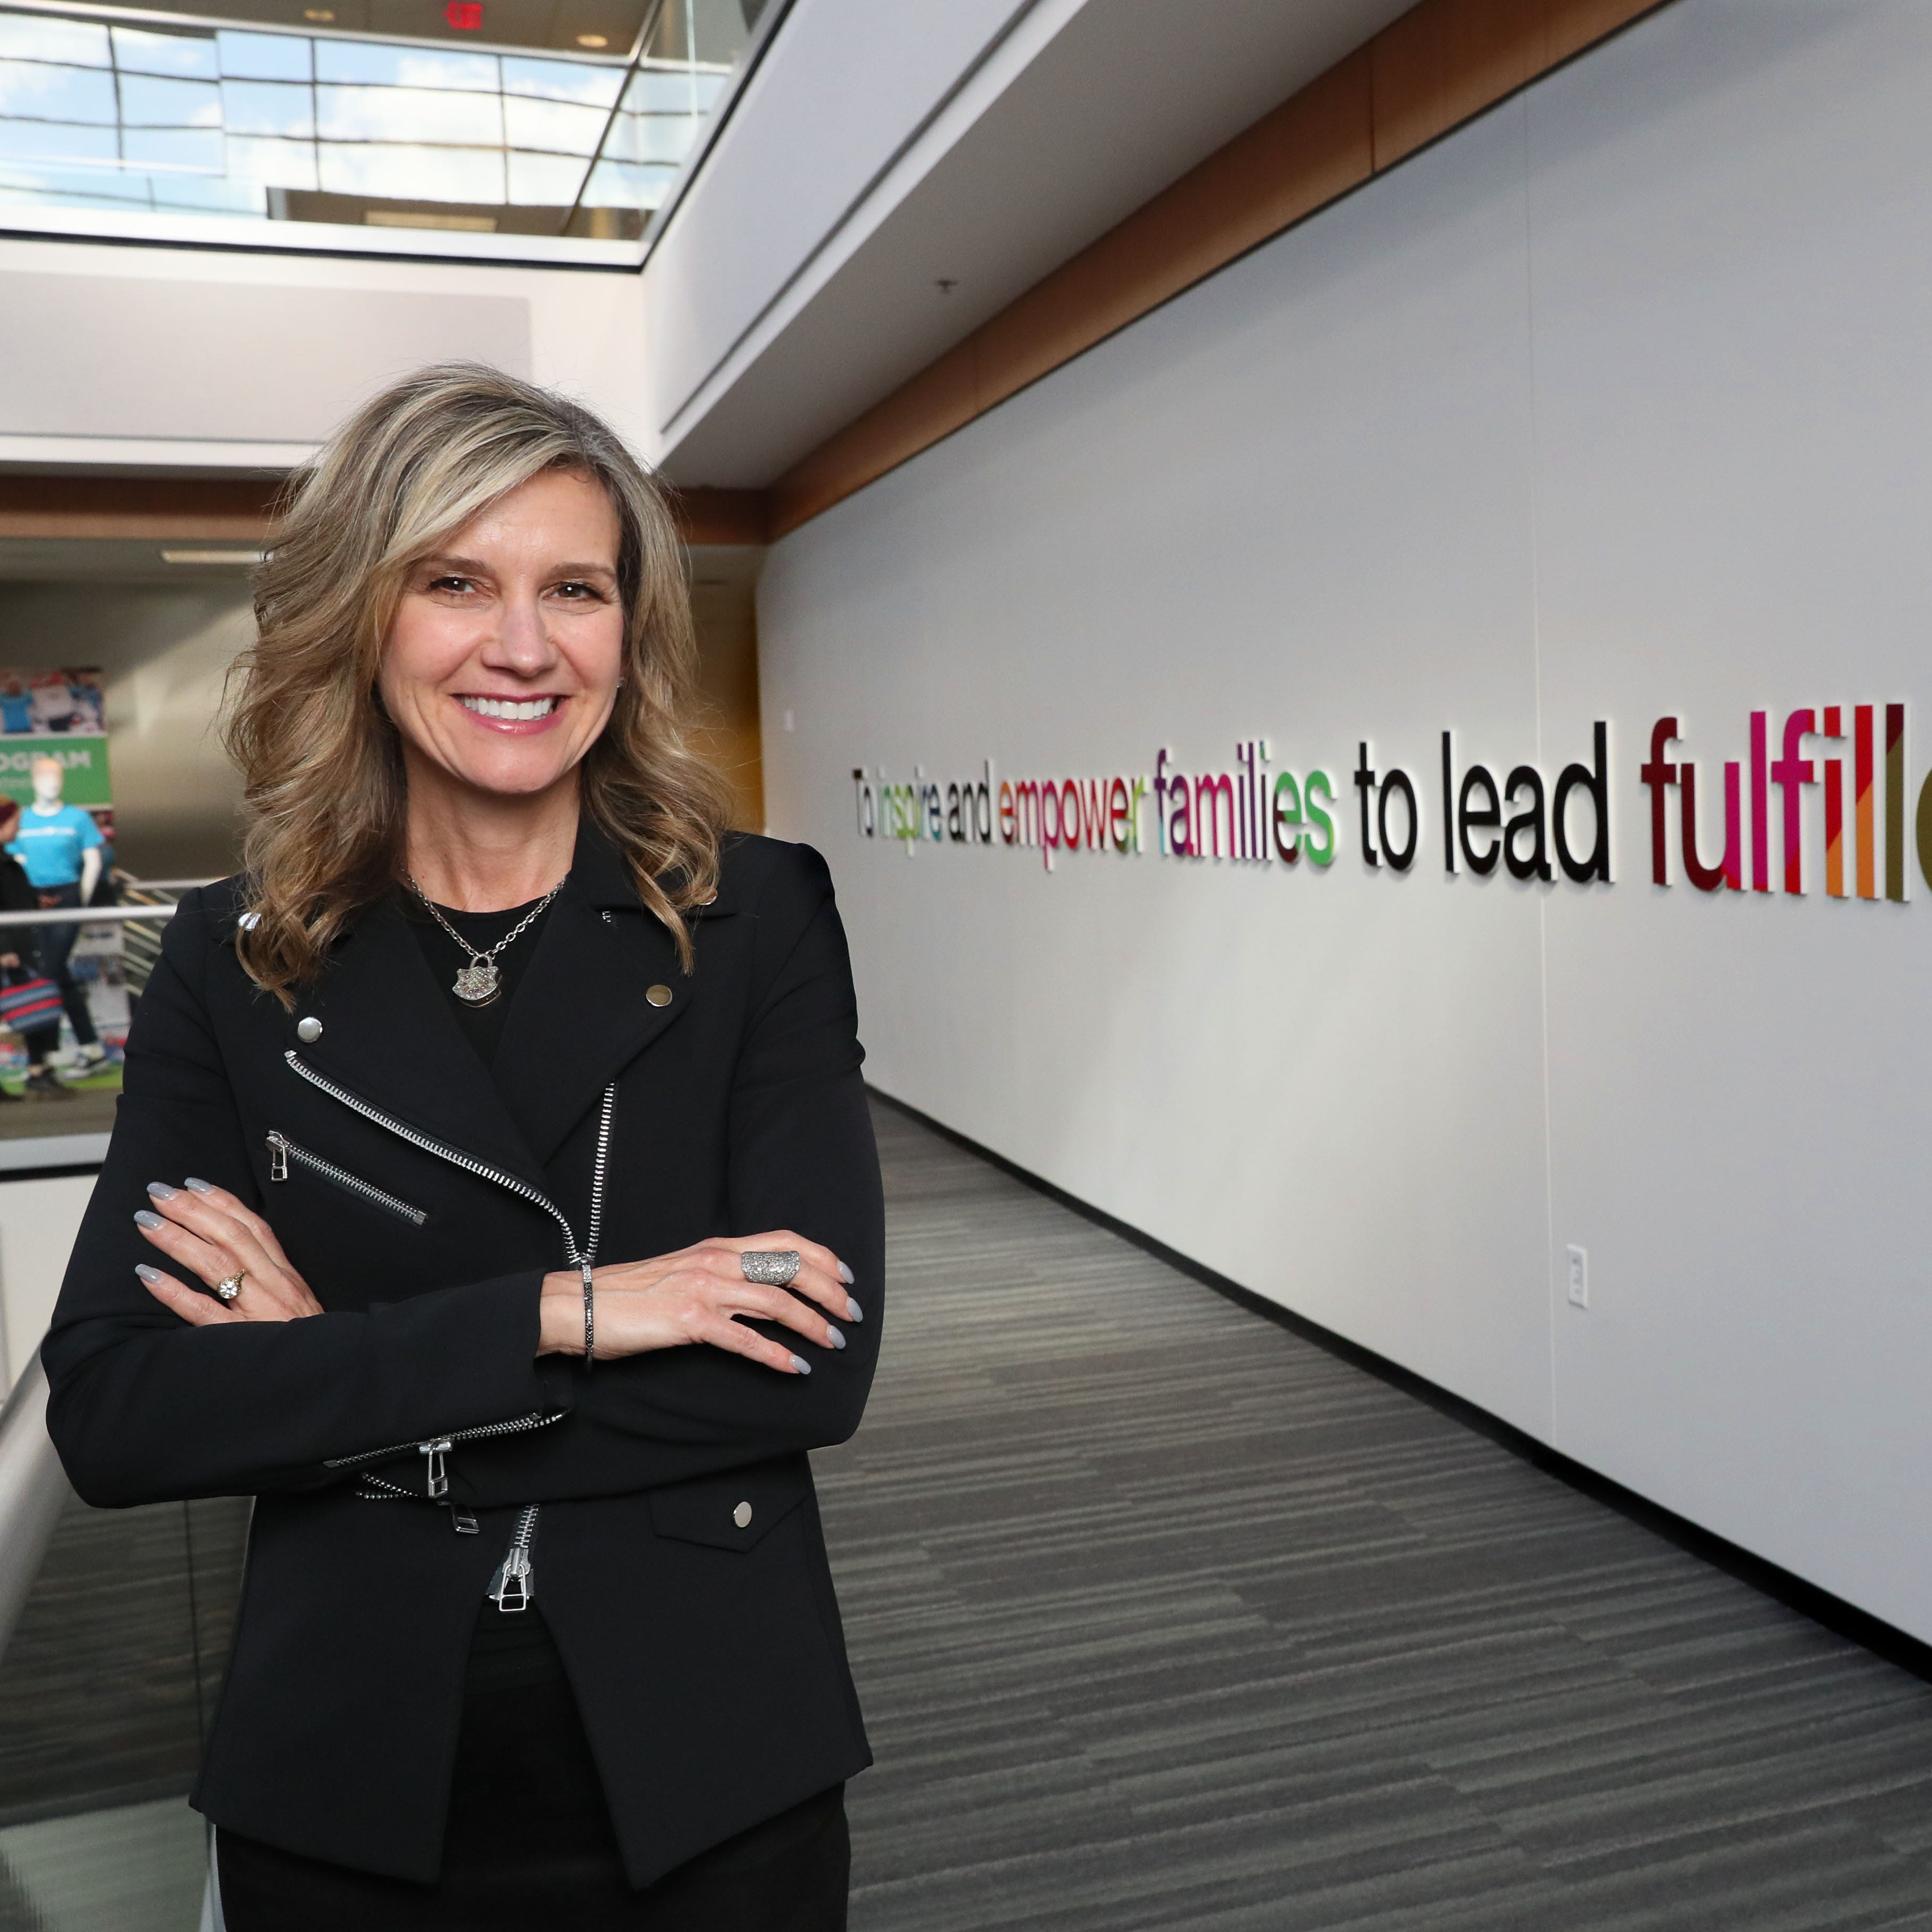 Kohl's CEO Michelle Gass got $12.3 million in total pay for 2018 as the retailer topped its profit goal